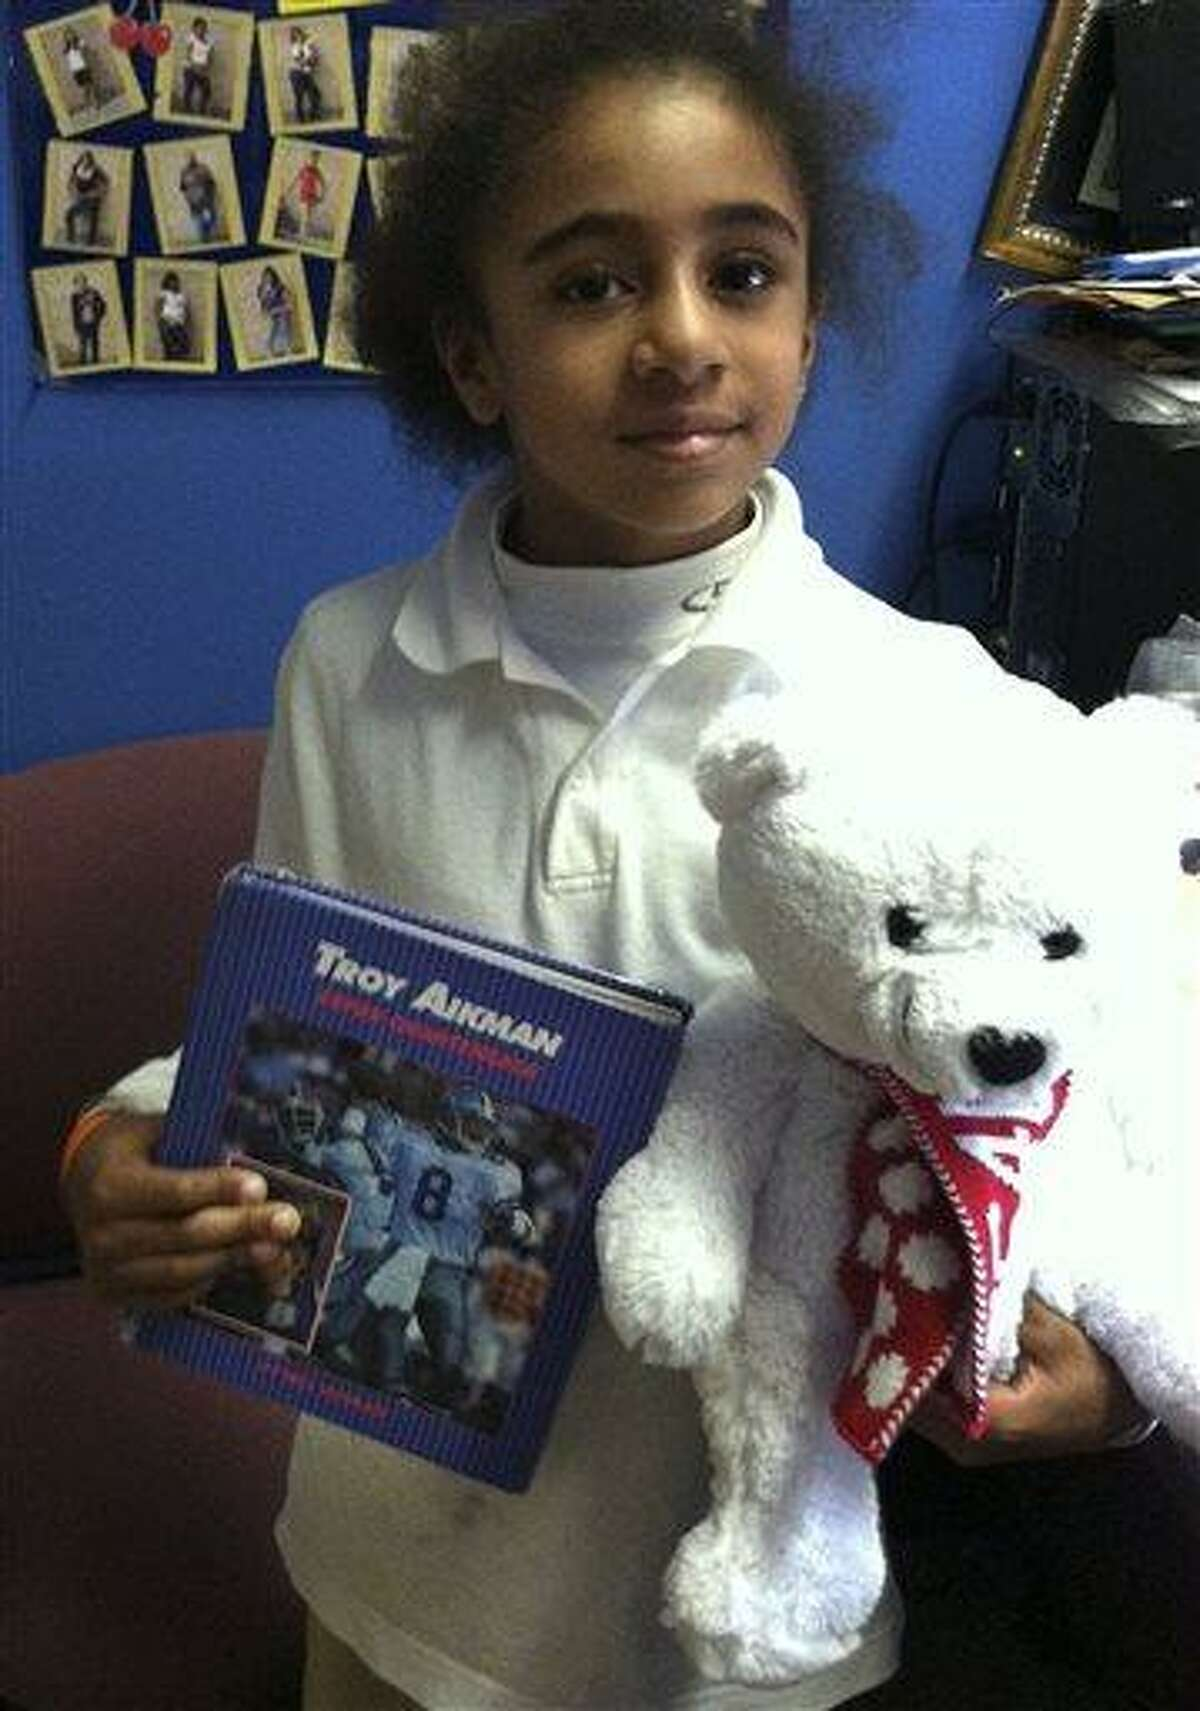 In this photo provided Monday, April 8, 2013 by R.E.A.L. Skills Network in Poughkeepsie, N.Y., Rashid Ricketts, 9, poses with some items the group received which originally had been donated to Newtown, Conn., after the December Sandy Hook Elementary School shooting. Newtown officials and families of those killed gave away 63,790 stuffed animals and thousands of other gifts that poured into the town in the weeks following the massacre. The final boxes of toys and school supplies were shipped out of the warehouse on March 29, 2013. (AP Photo/R.E.A.L. Skills Network)